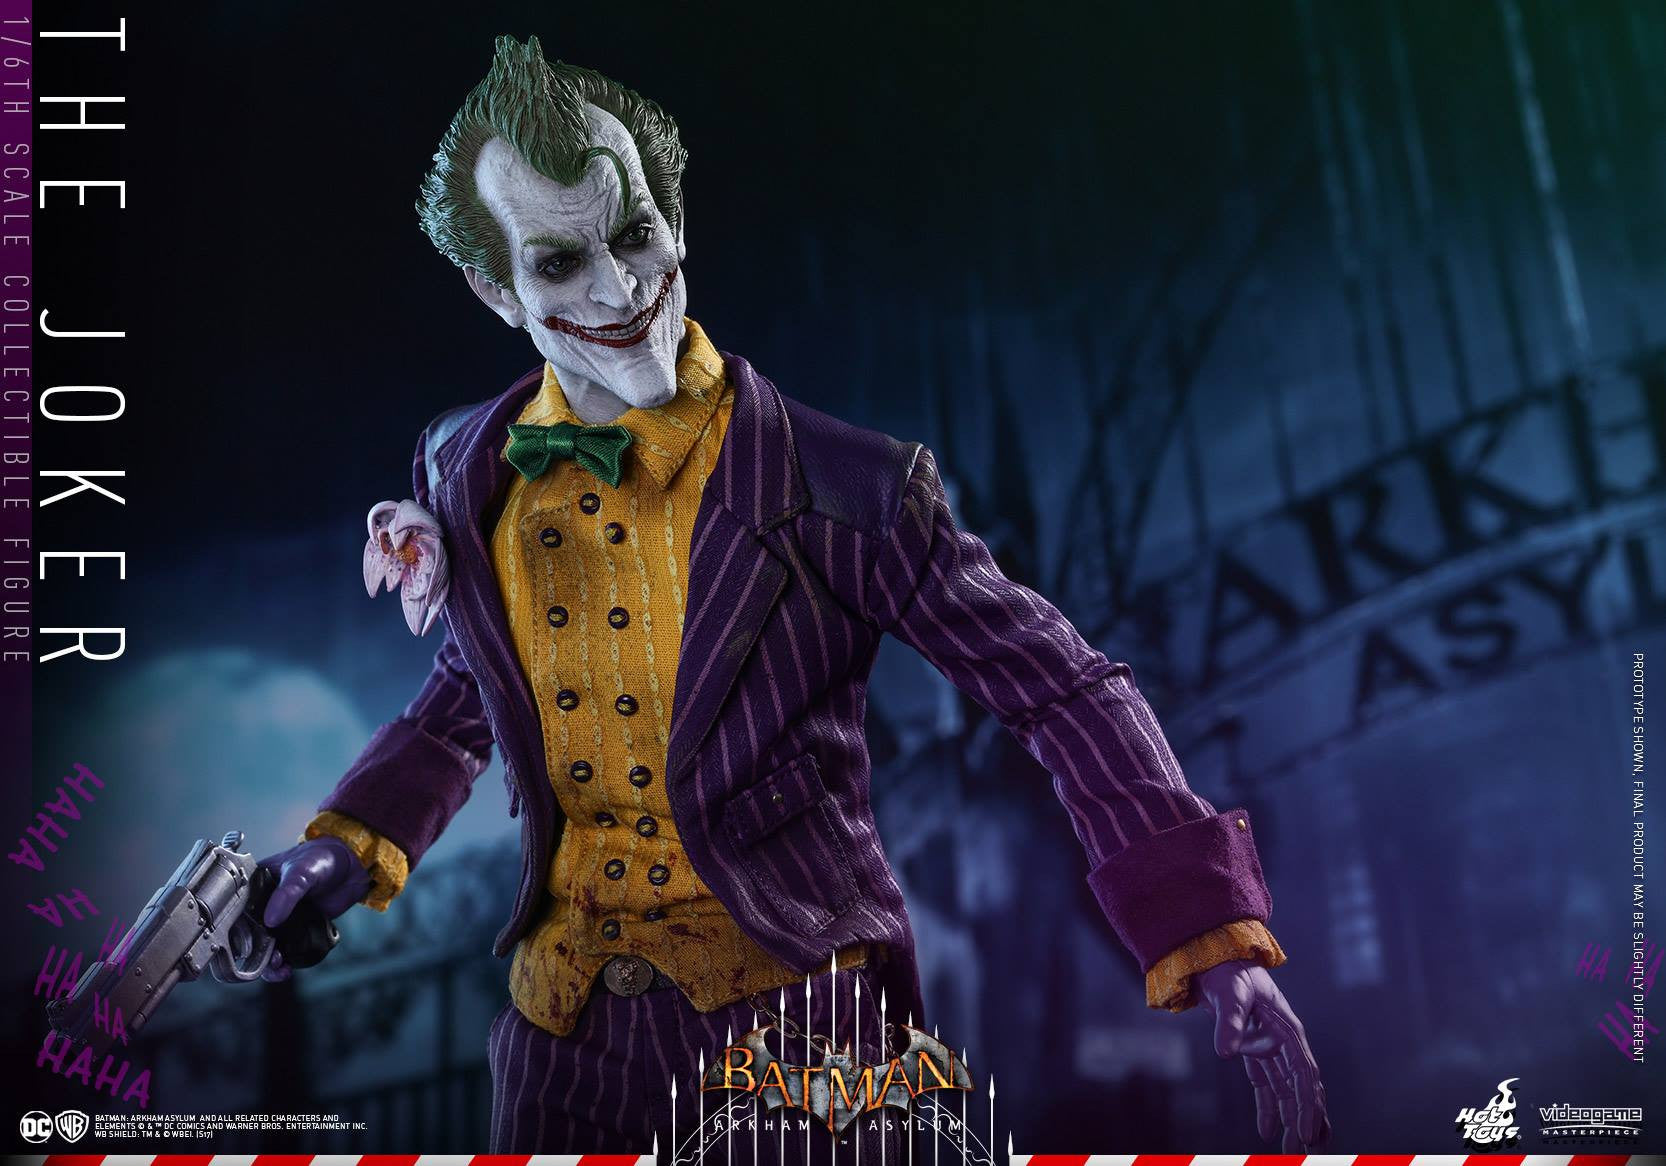 Hot Toys - VGM27 - Batman: Arkham Asylum - The Joker - Marvelous Toys - 16